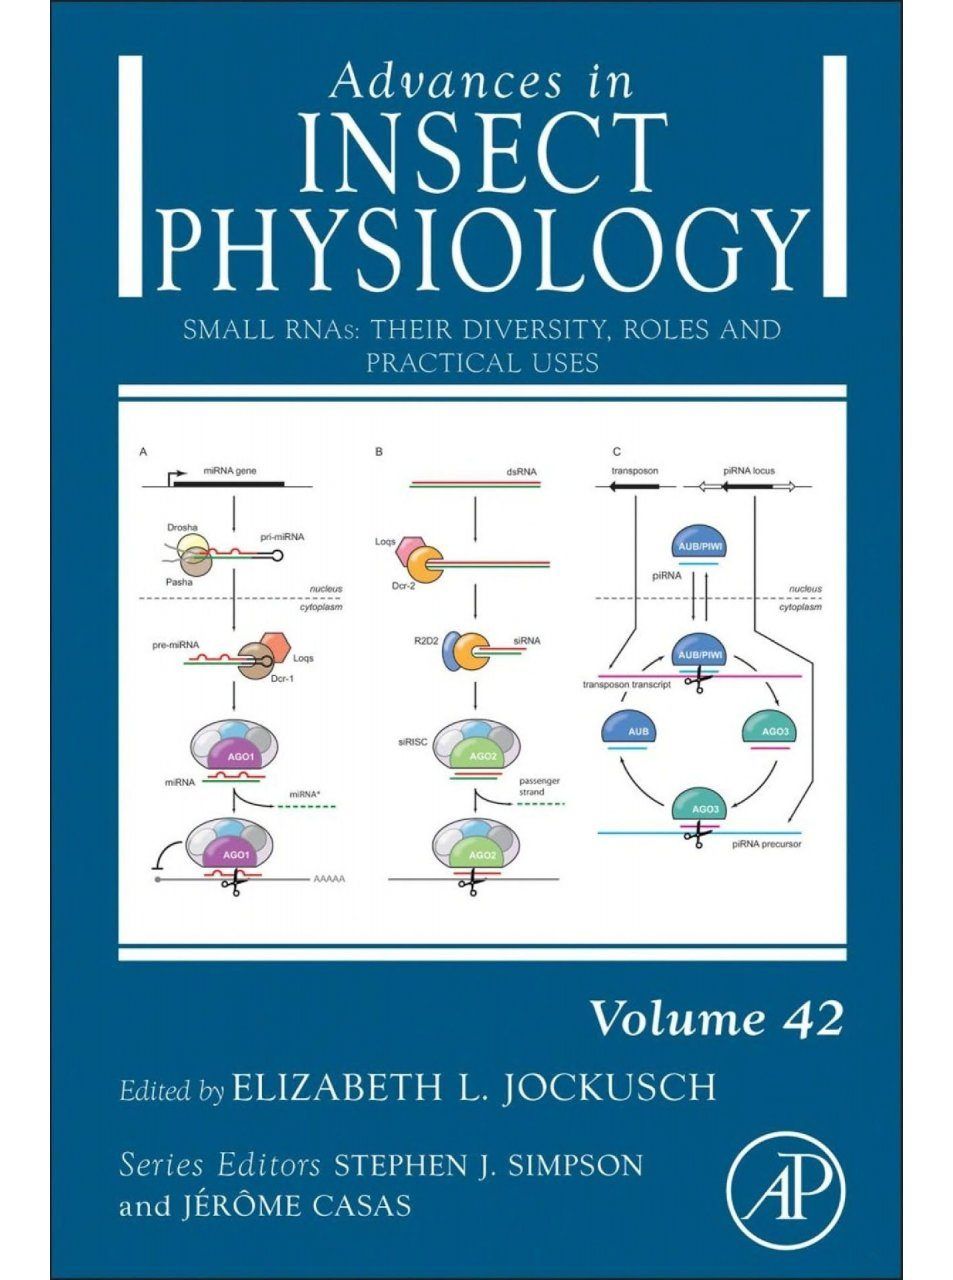 Advances in Insect Physiology, Volume 42